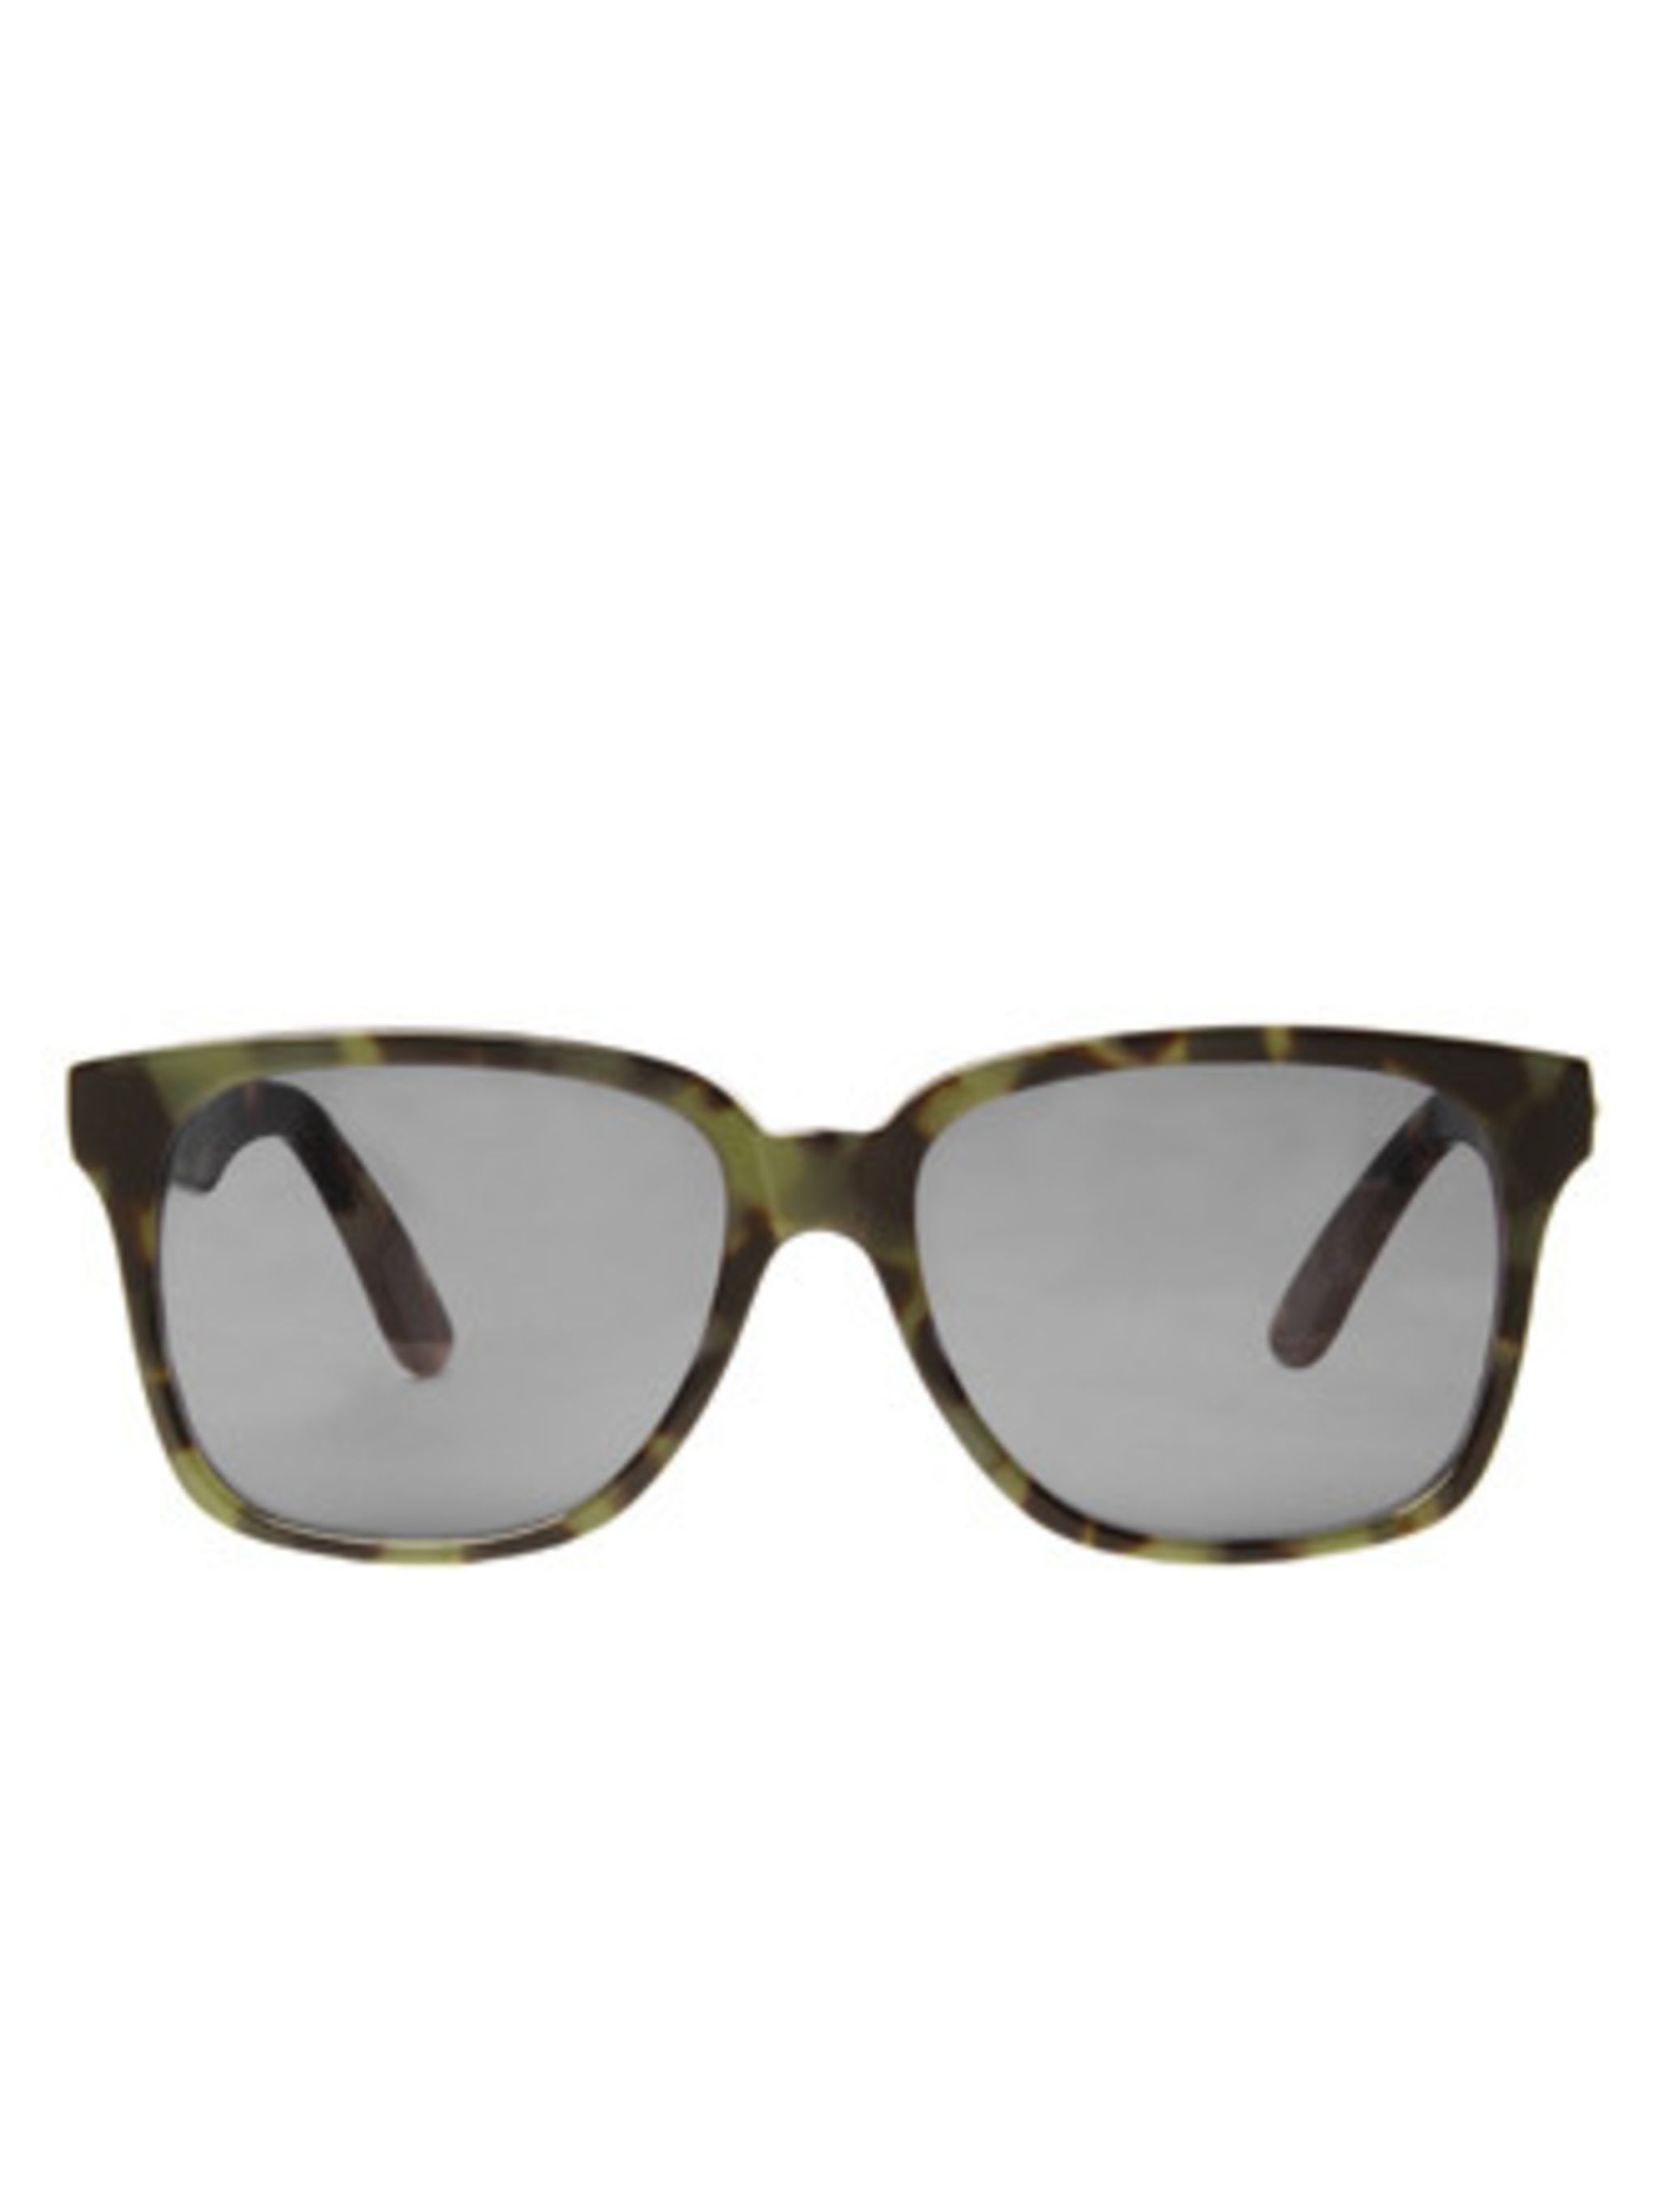 "<p>Kurt Geiger has been tempting us with shoes, boots and sandals since 1963. Now they have branched out into sunglasses. We can't resist this green and brown tortoiseshell pair.</p><p>Sunglasses, £160 by <a href=""http://www.kurtgeiger.com/online-shop/167"